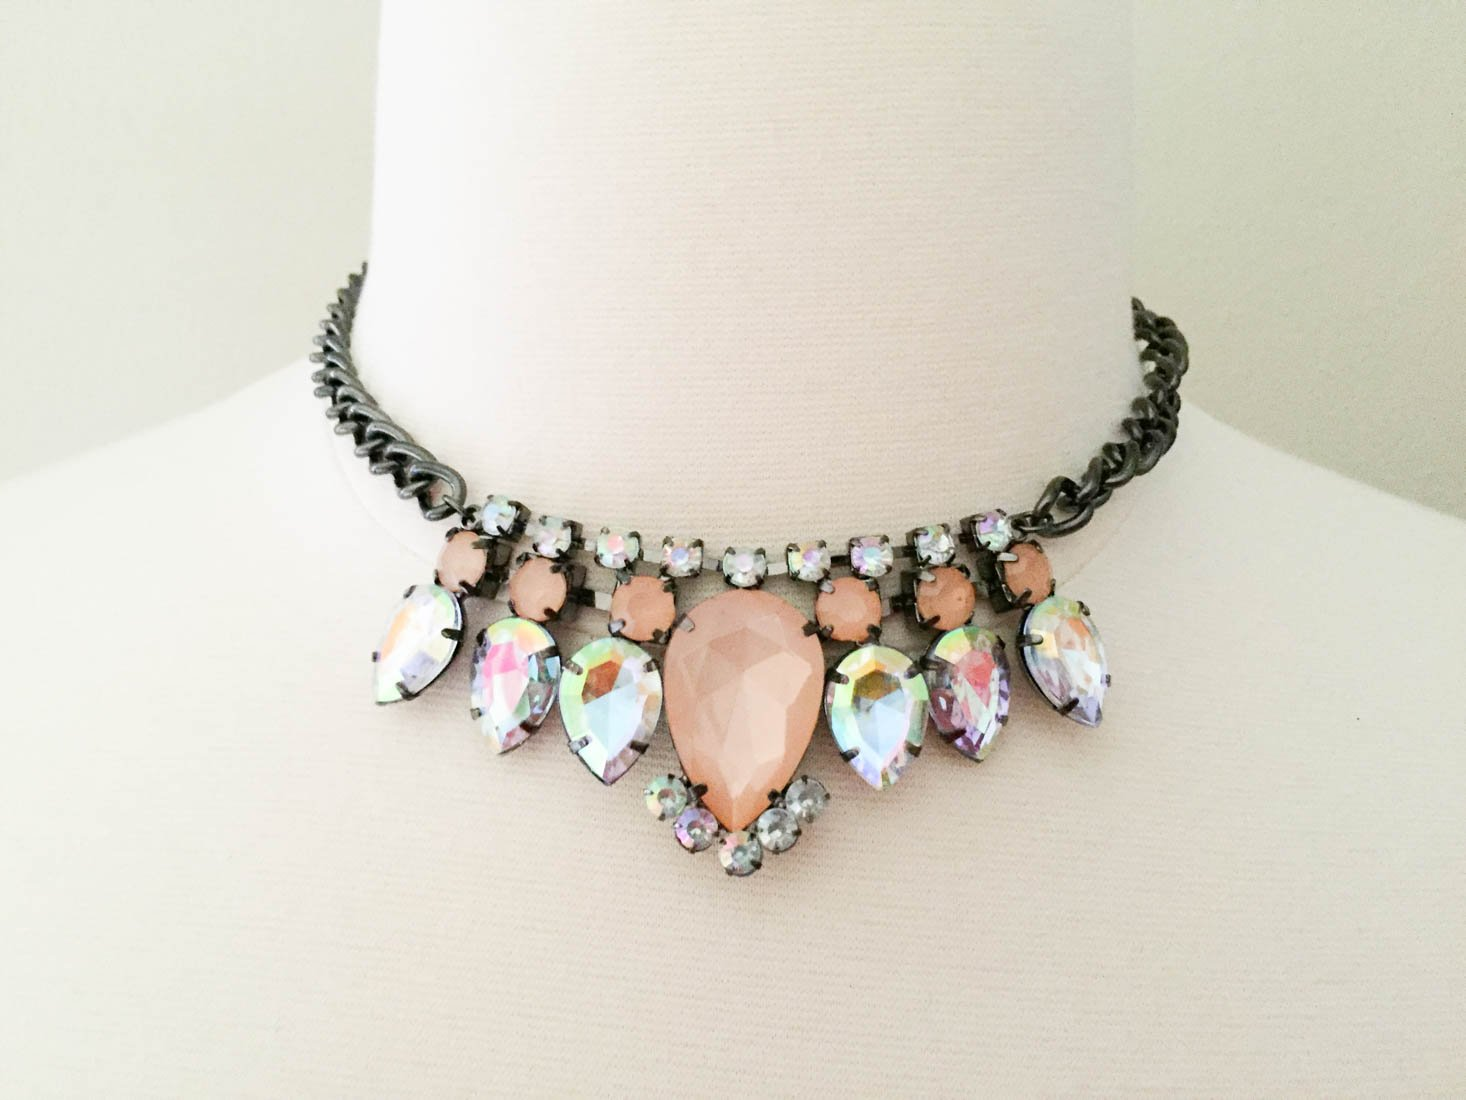 gina-louise-october-2016-necklace-2